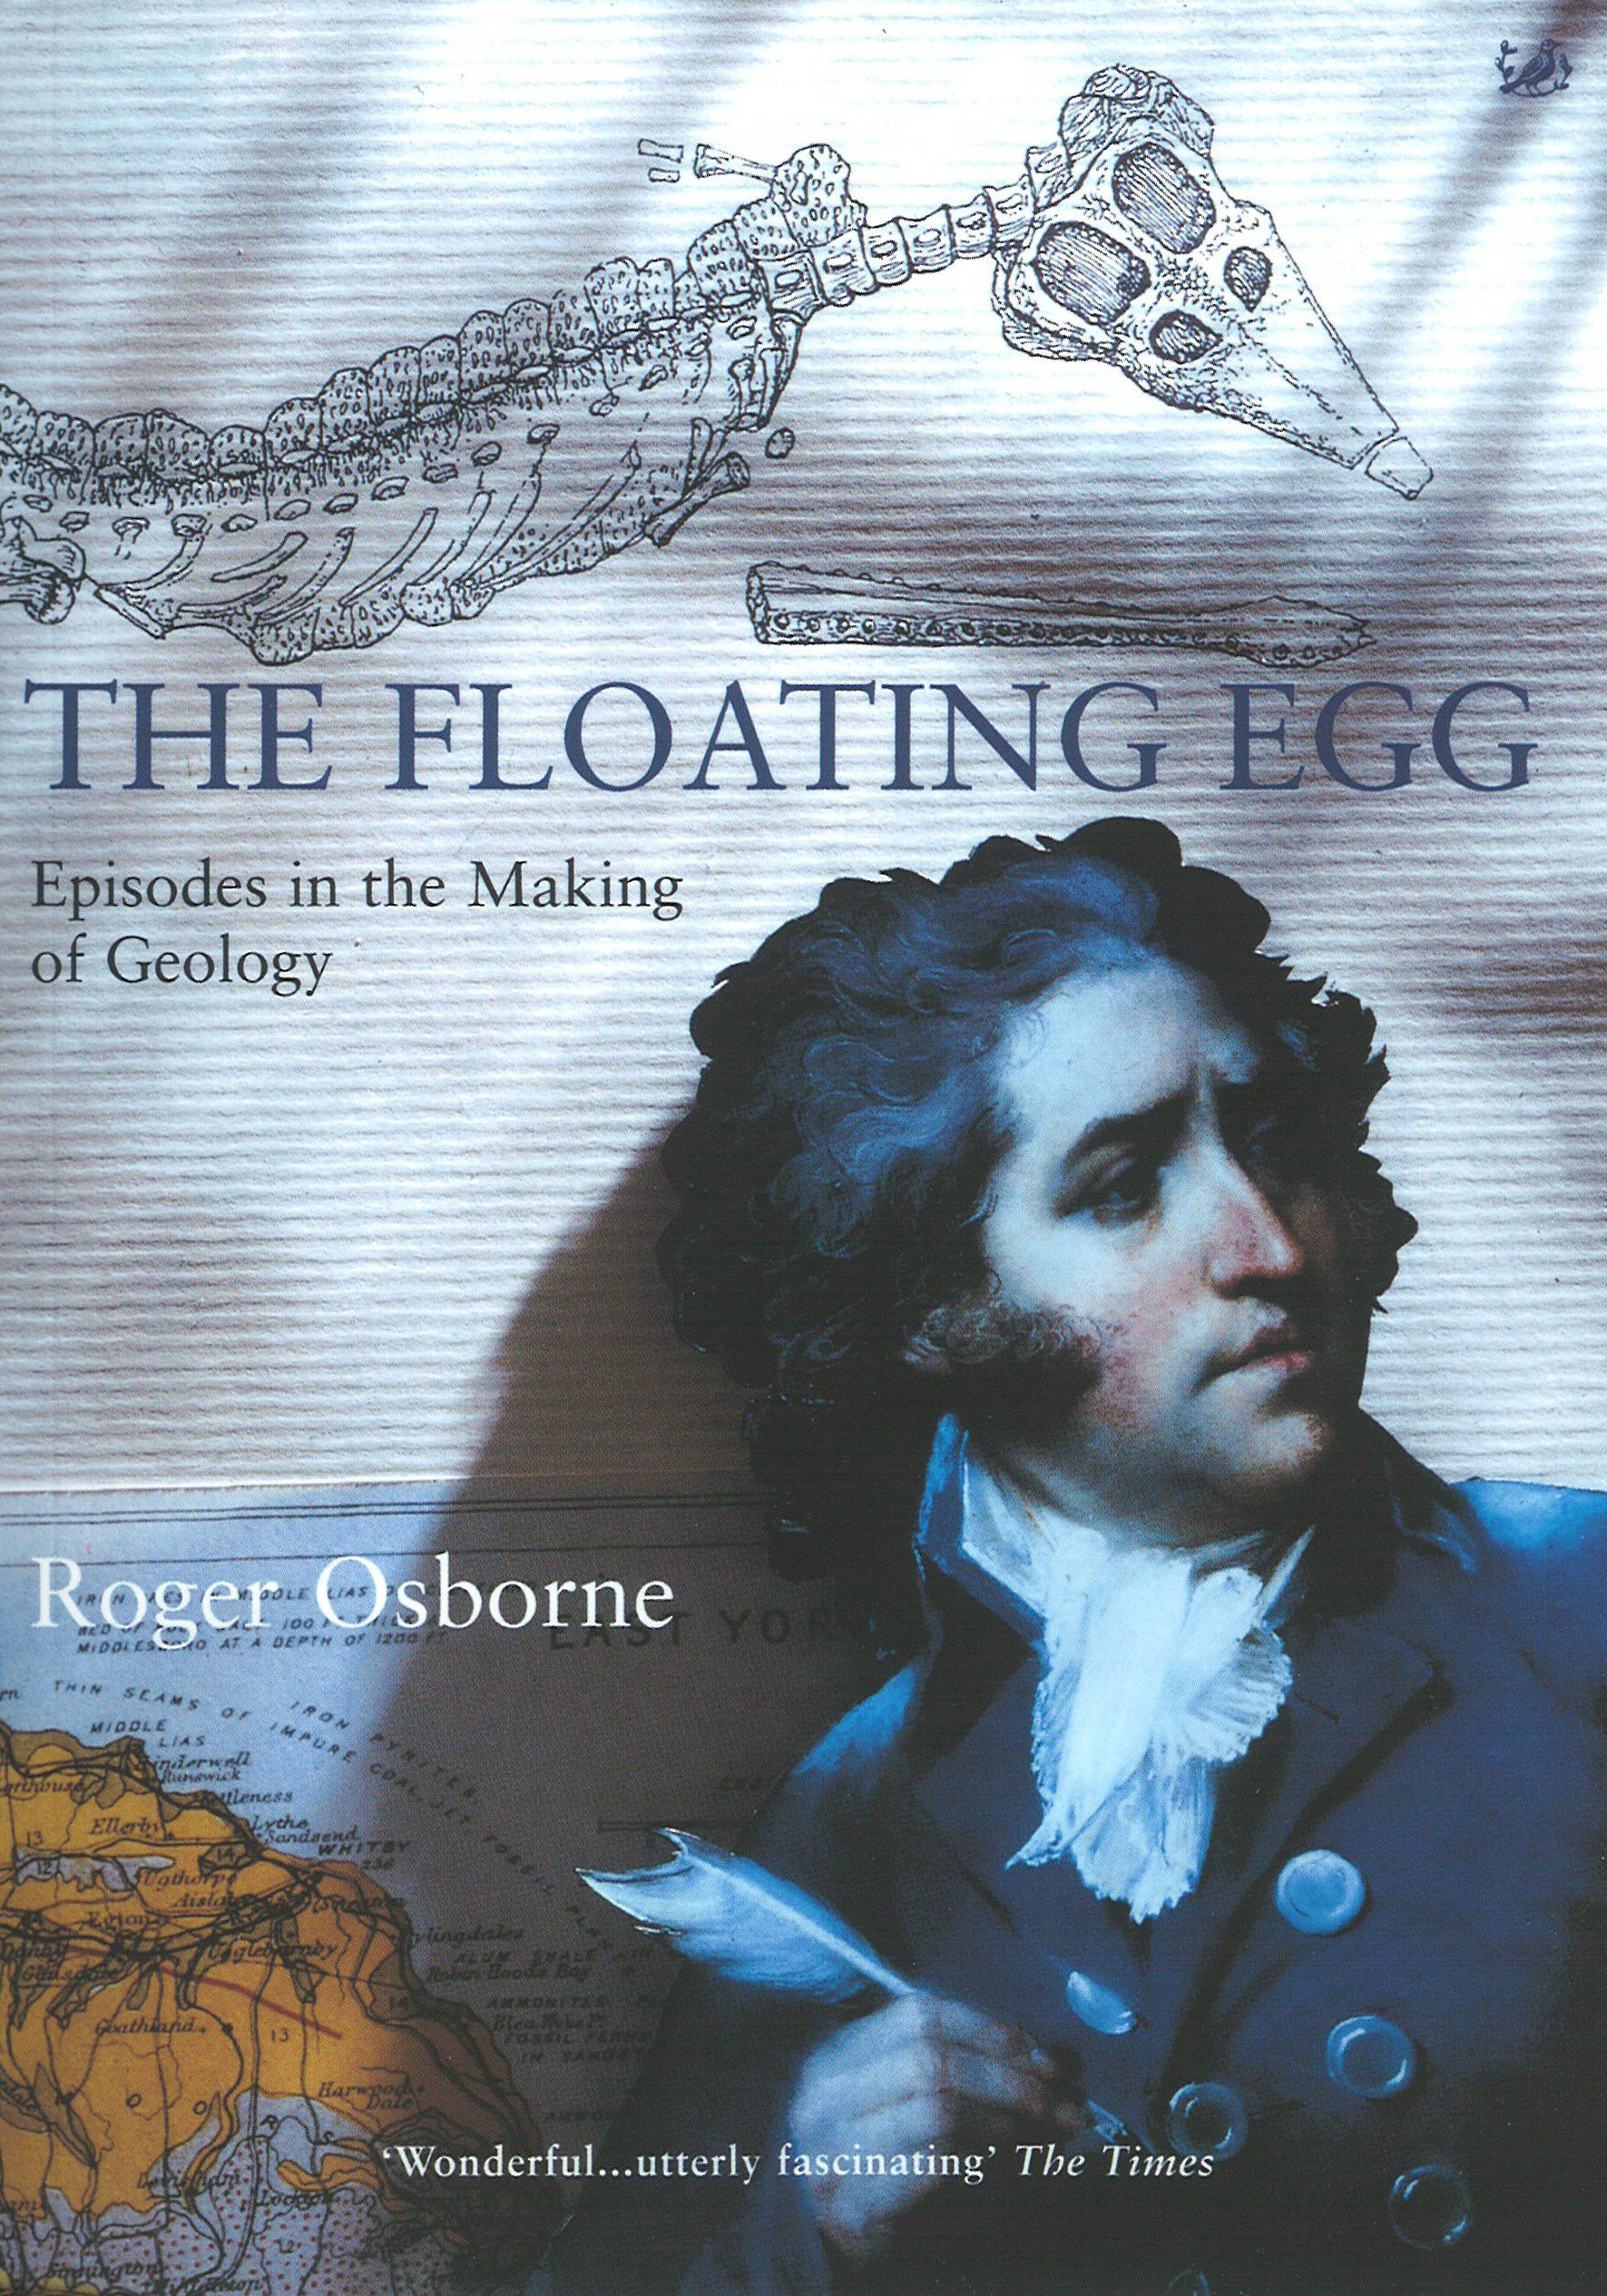 The Floating Egg Episodes in the Making of Geology